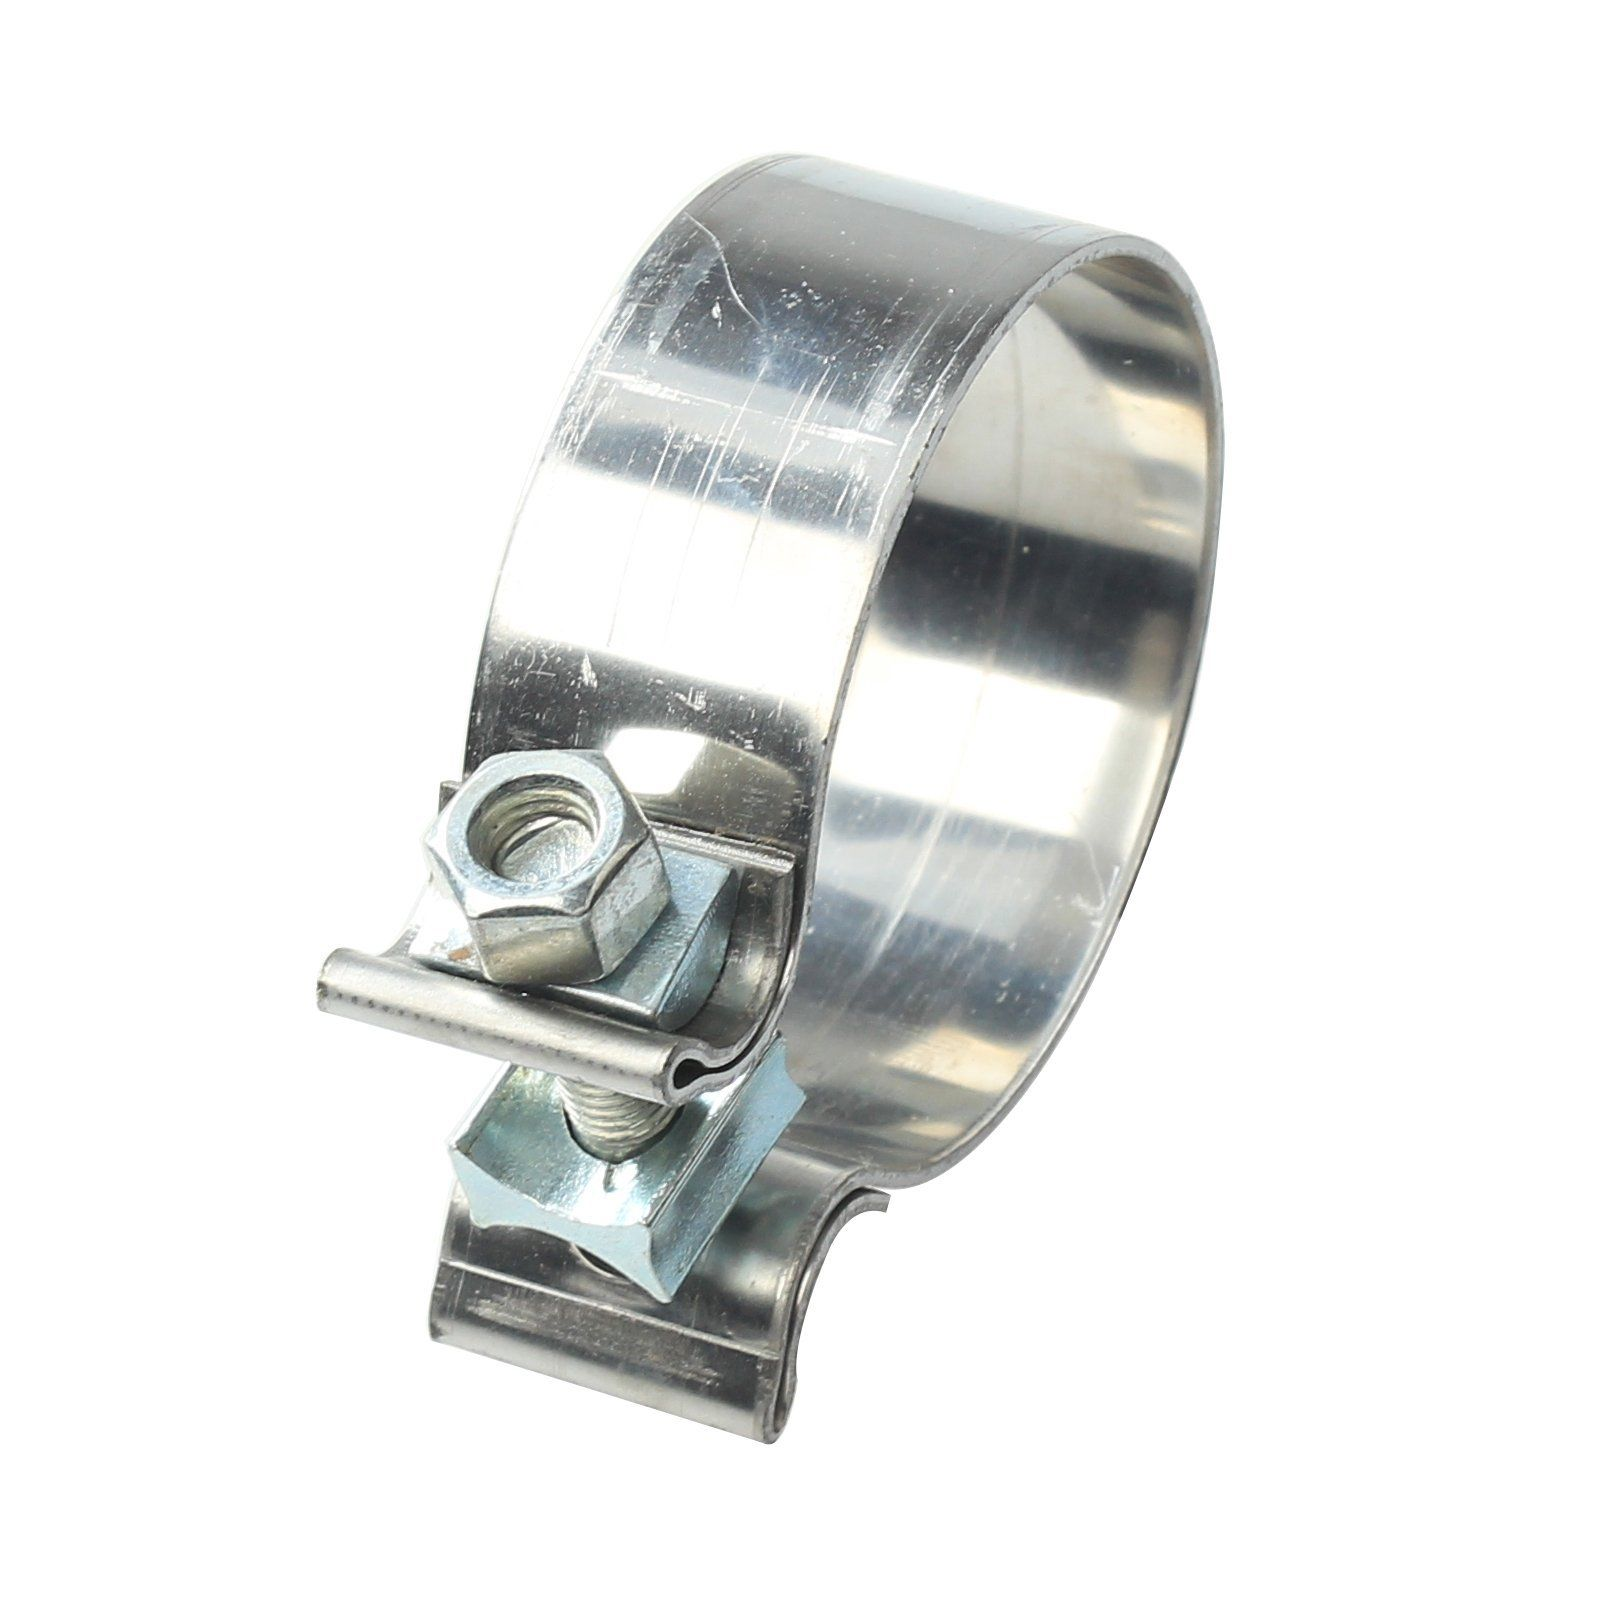 Stainless Steel Lap Joint Band Exhaust Clamp 1 75 Quot 2 Quot 2 25